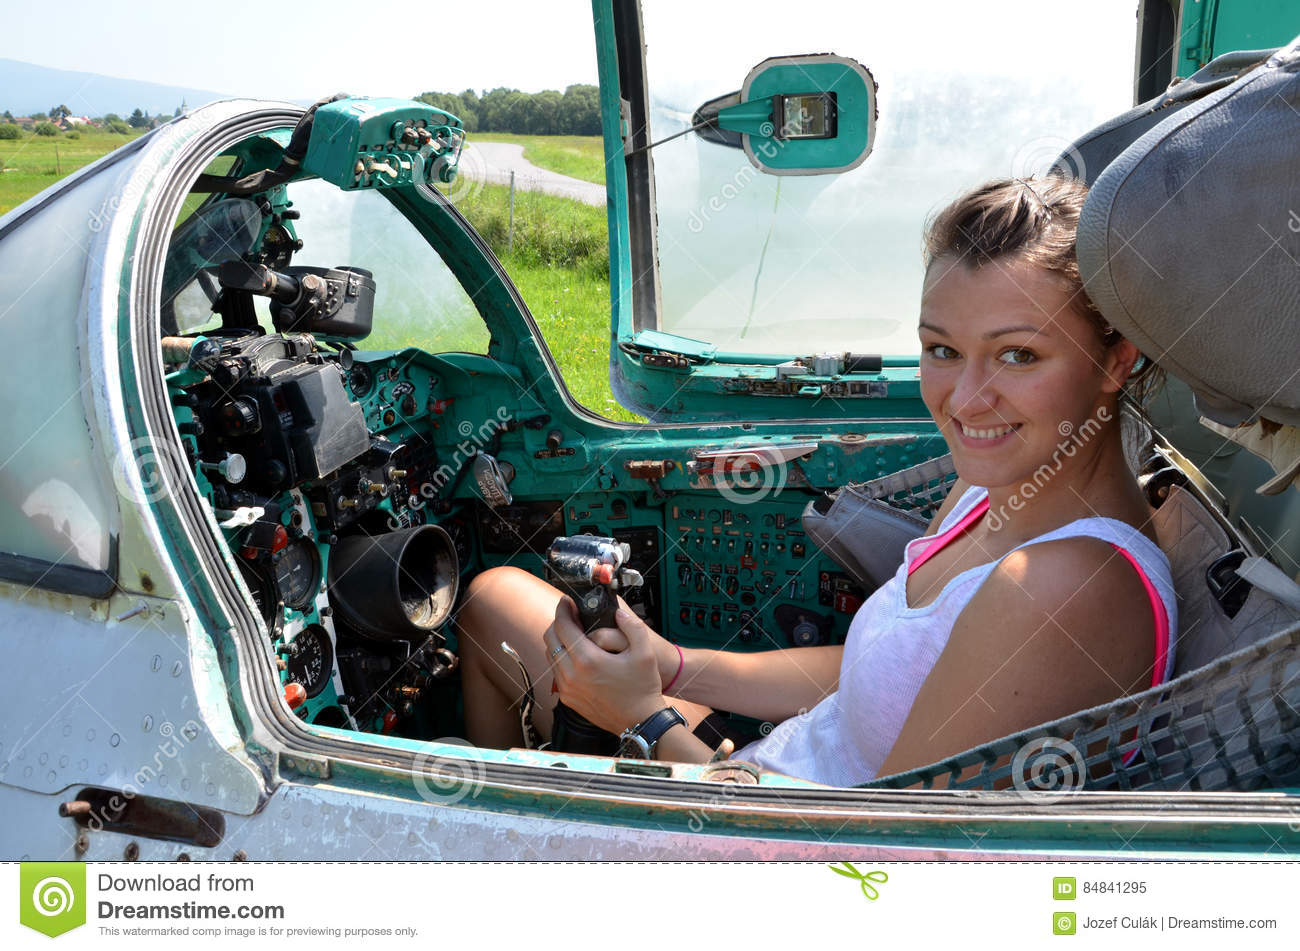 Girl Sits And Smiles In Cabin Of Old Jet Fighter MiG-21